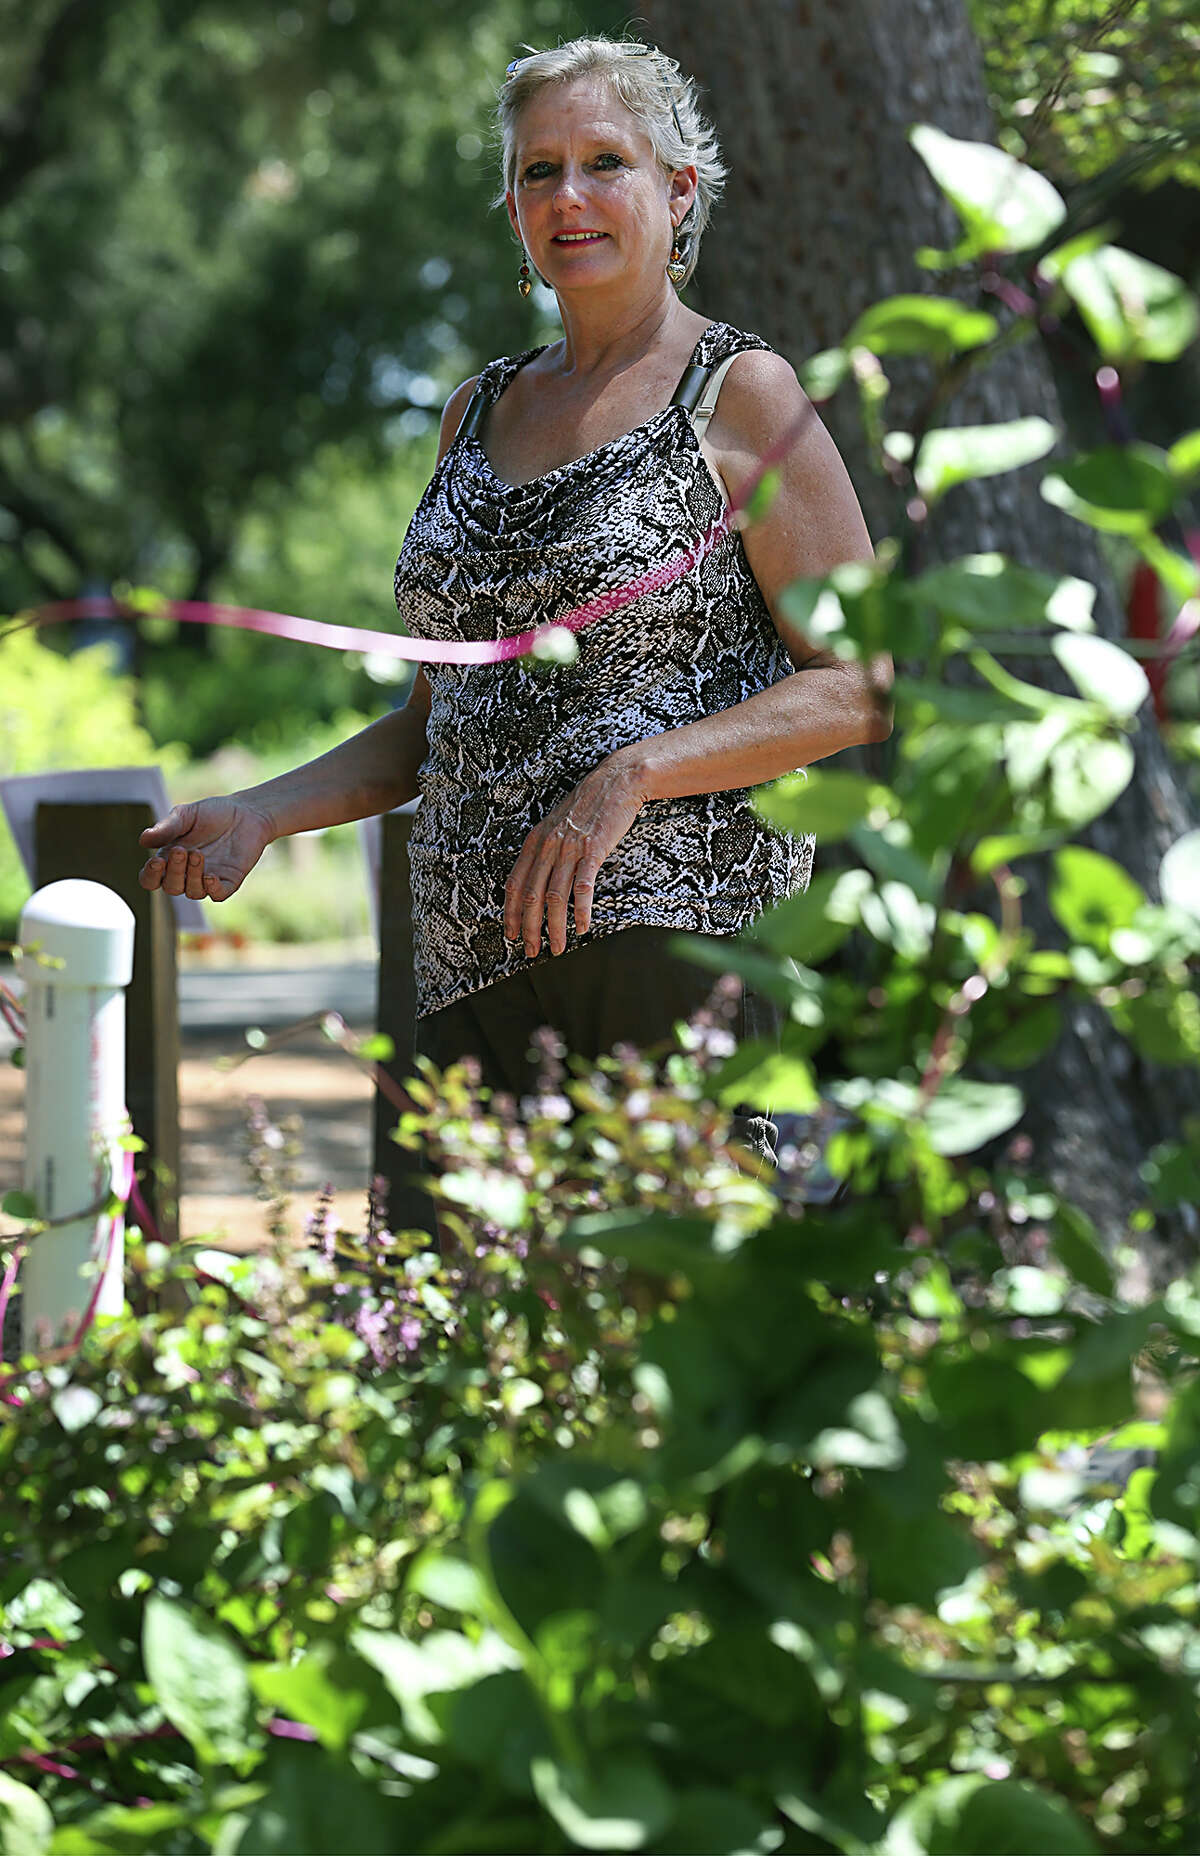 Patti Taylor, an organizer of the local TransFarming Meetup group, surveys a wicking bed garden that's growing Malabar spinach and basil. Taylor and the group, which is interested in sustainable gardening practices, planted the demo bed at Rainbow Gardens on Bandera Road.